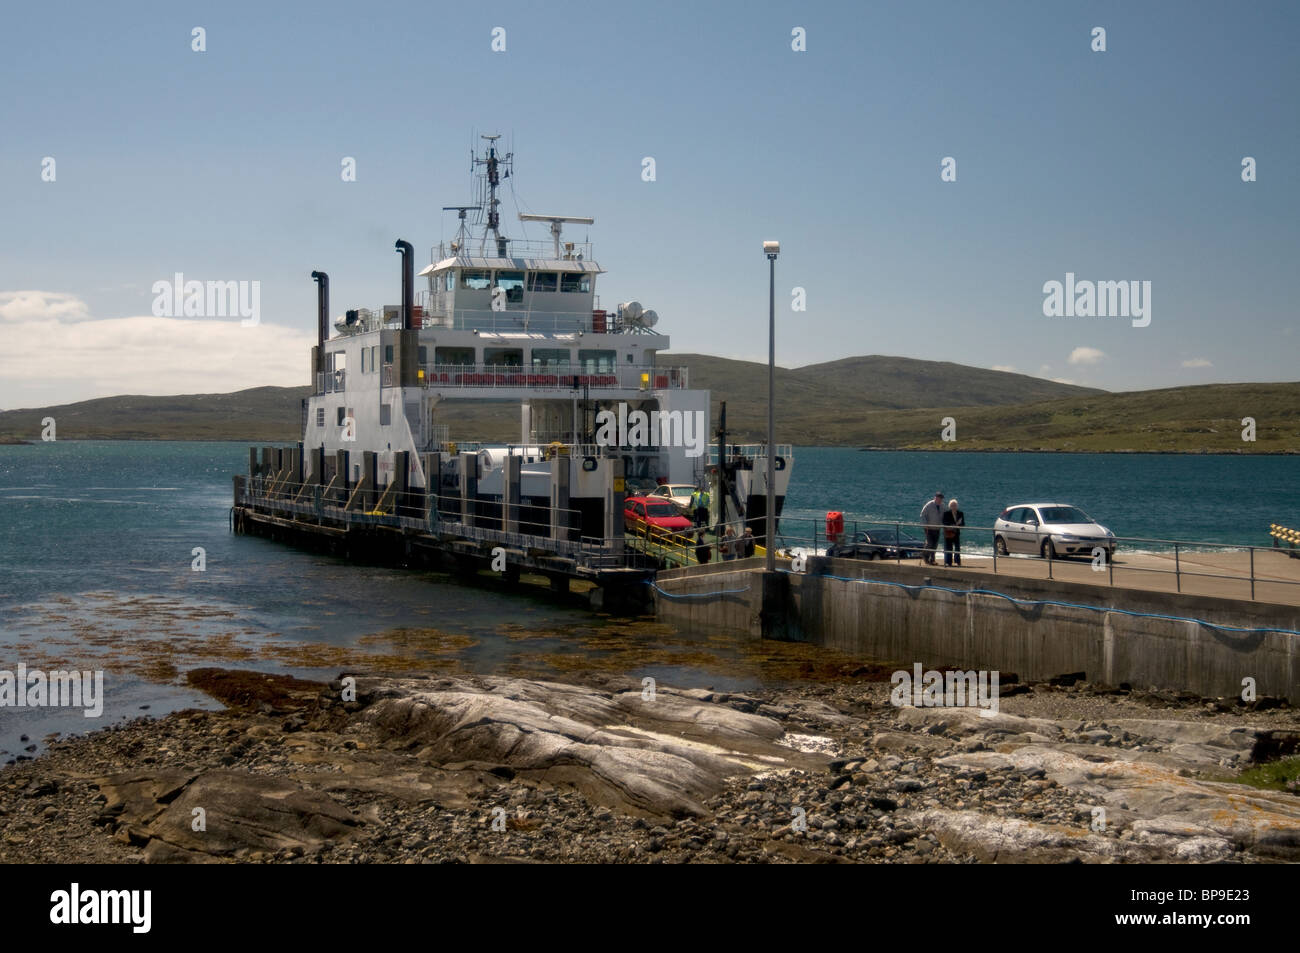 The Ferry Jetty at Leverbugh, Harris, Western Isles, Scotland,  SCO 6348. - Stock Image